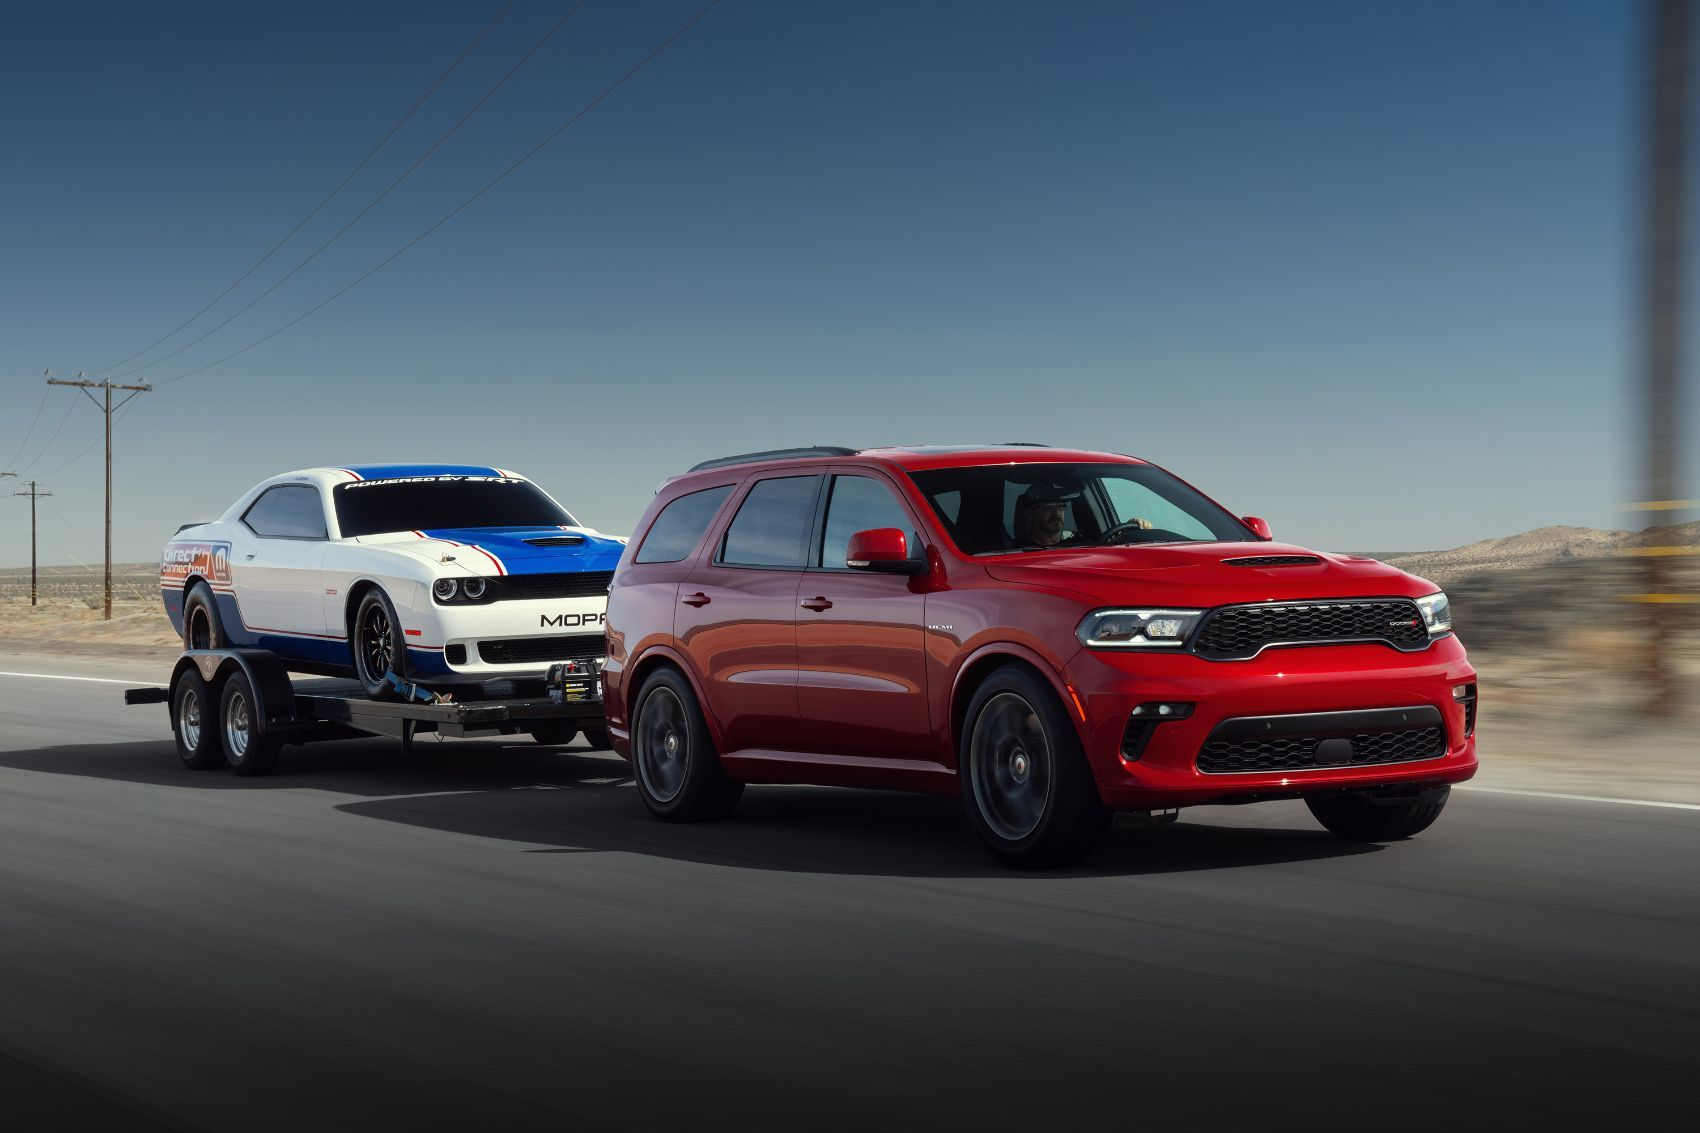 2021 Dodge Durango Quick Pricing Trim Level Guide